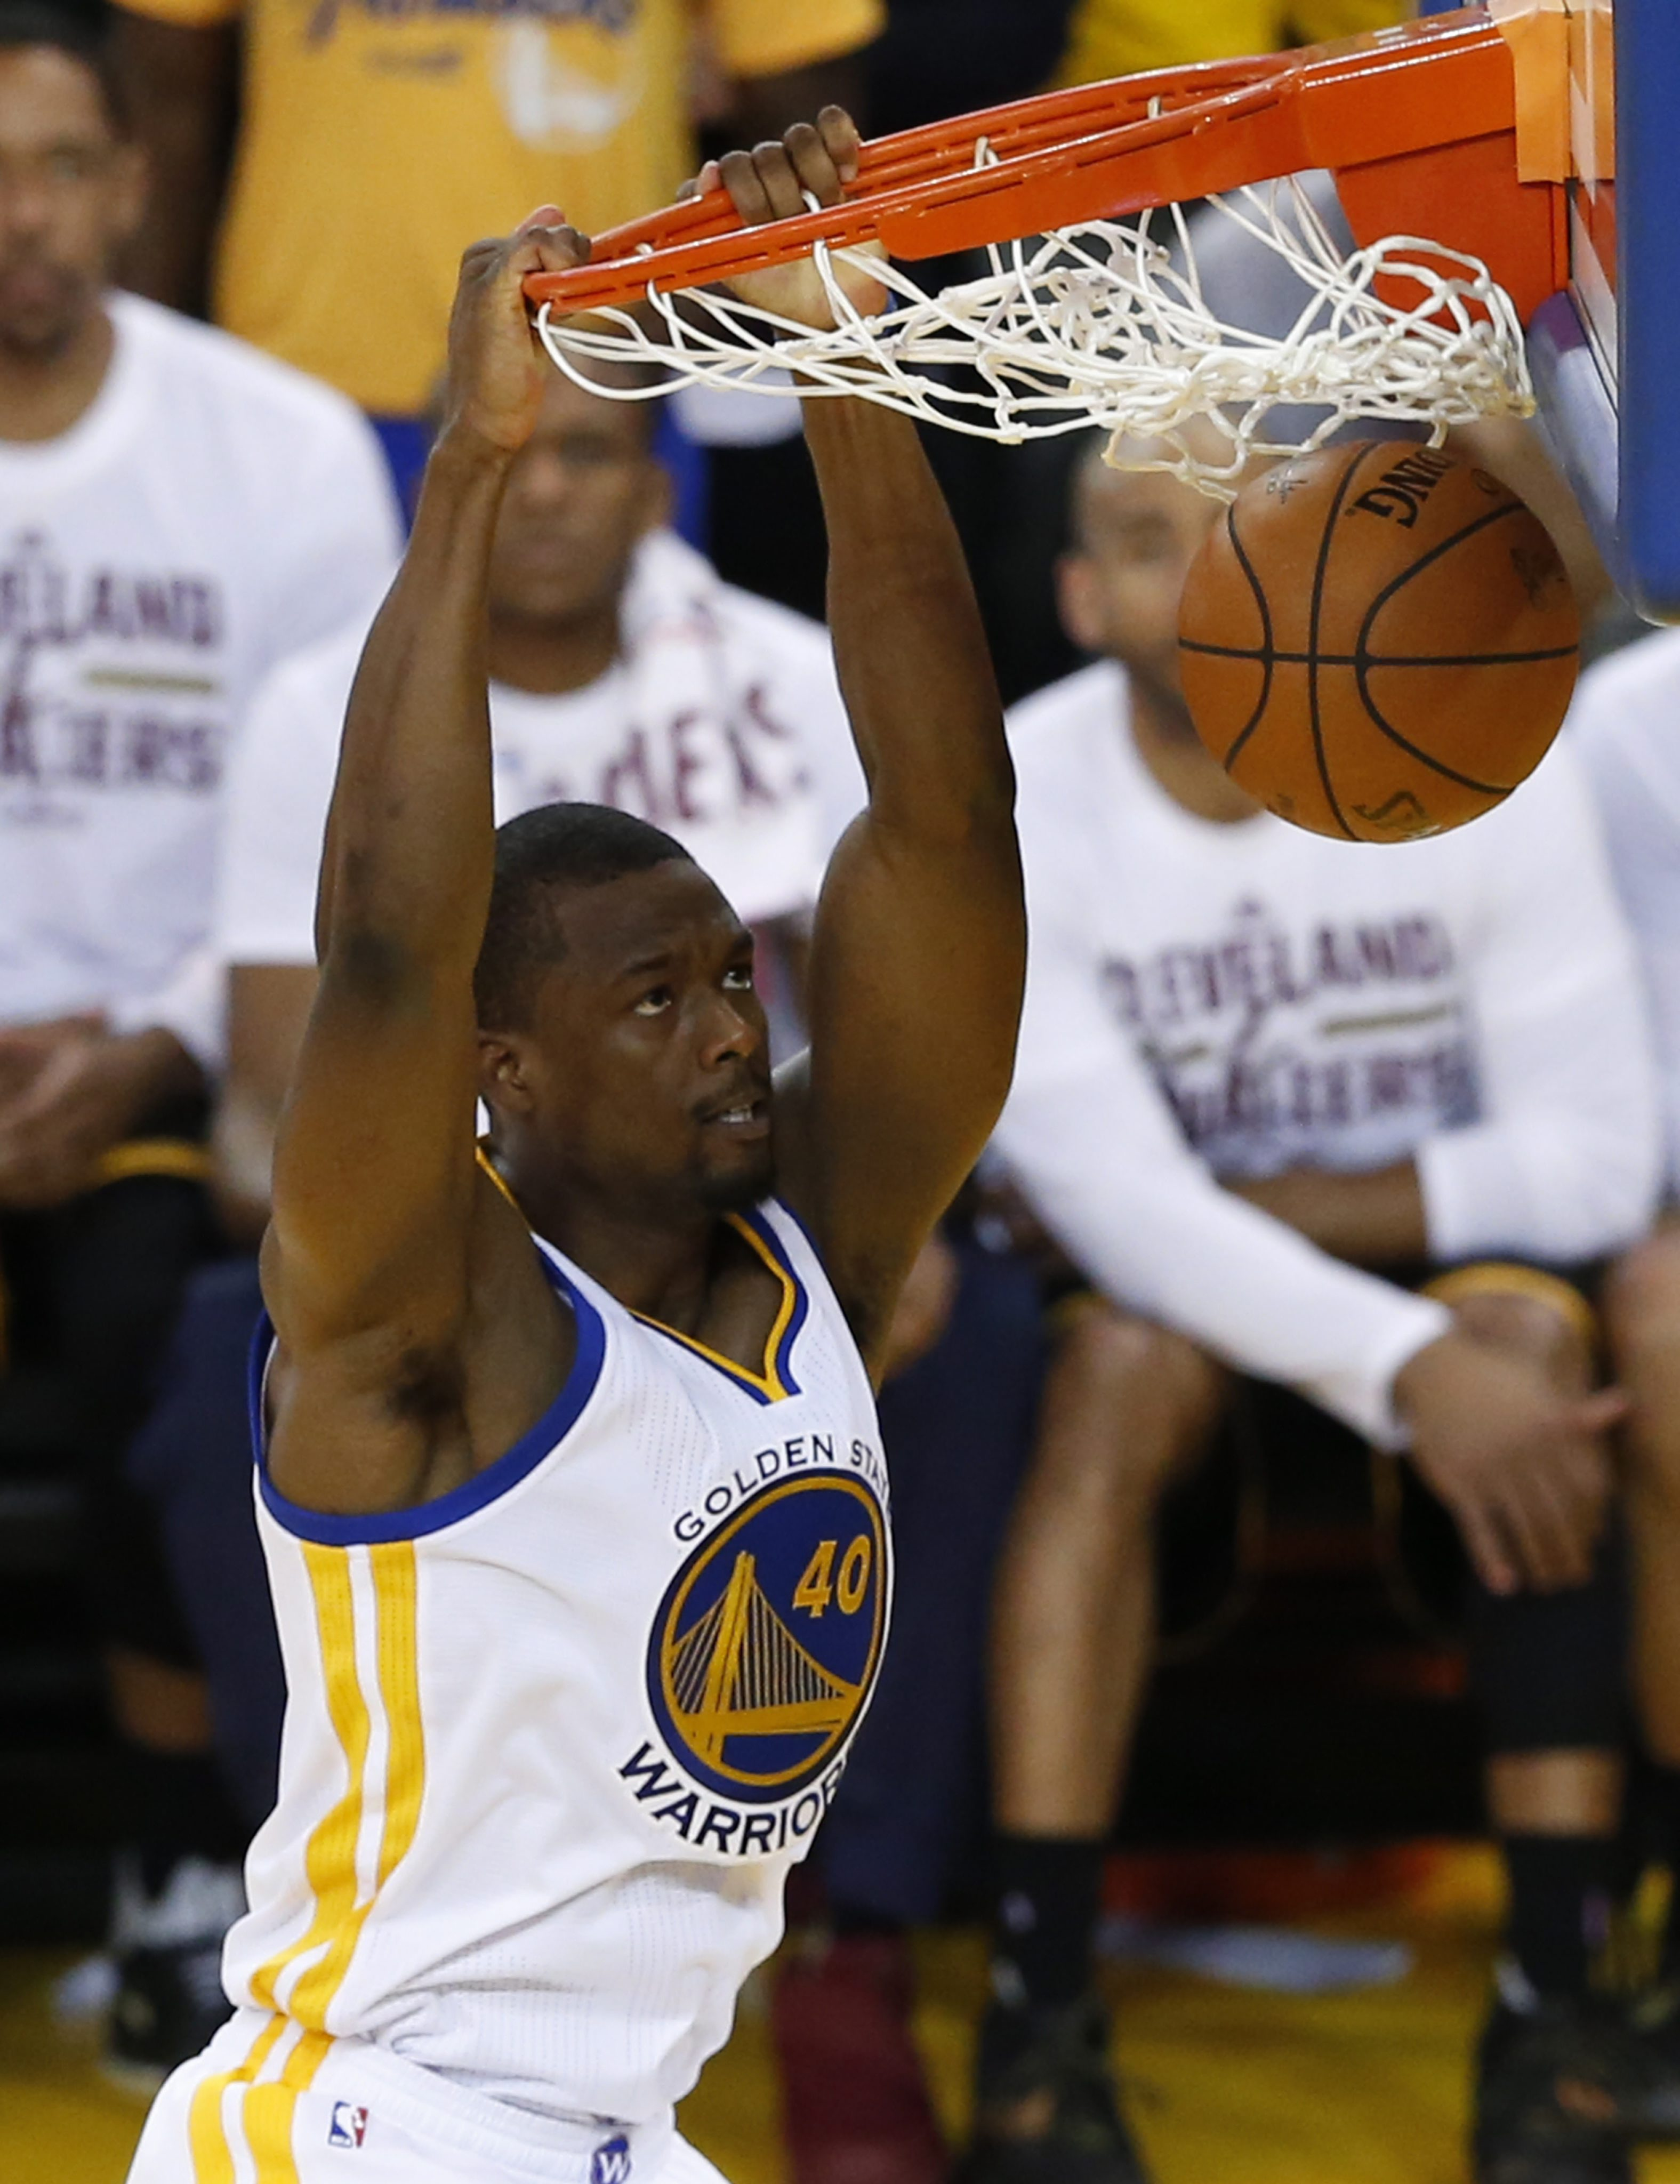 LWS169. Oakland (United States), 19/06/2016.- Golden State Warriors player Harrison Barnes dunks the ball against the Cleveland Cavaliers in the second half of their NBA Finals game seven at Oracle Arena in Oakland, California, USA, 19 June 2016. (Baloncesto, Estados Unidos) EFE/EPA/JOHN G. MABANGLO CORBIS OUT